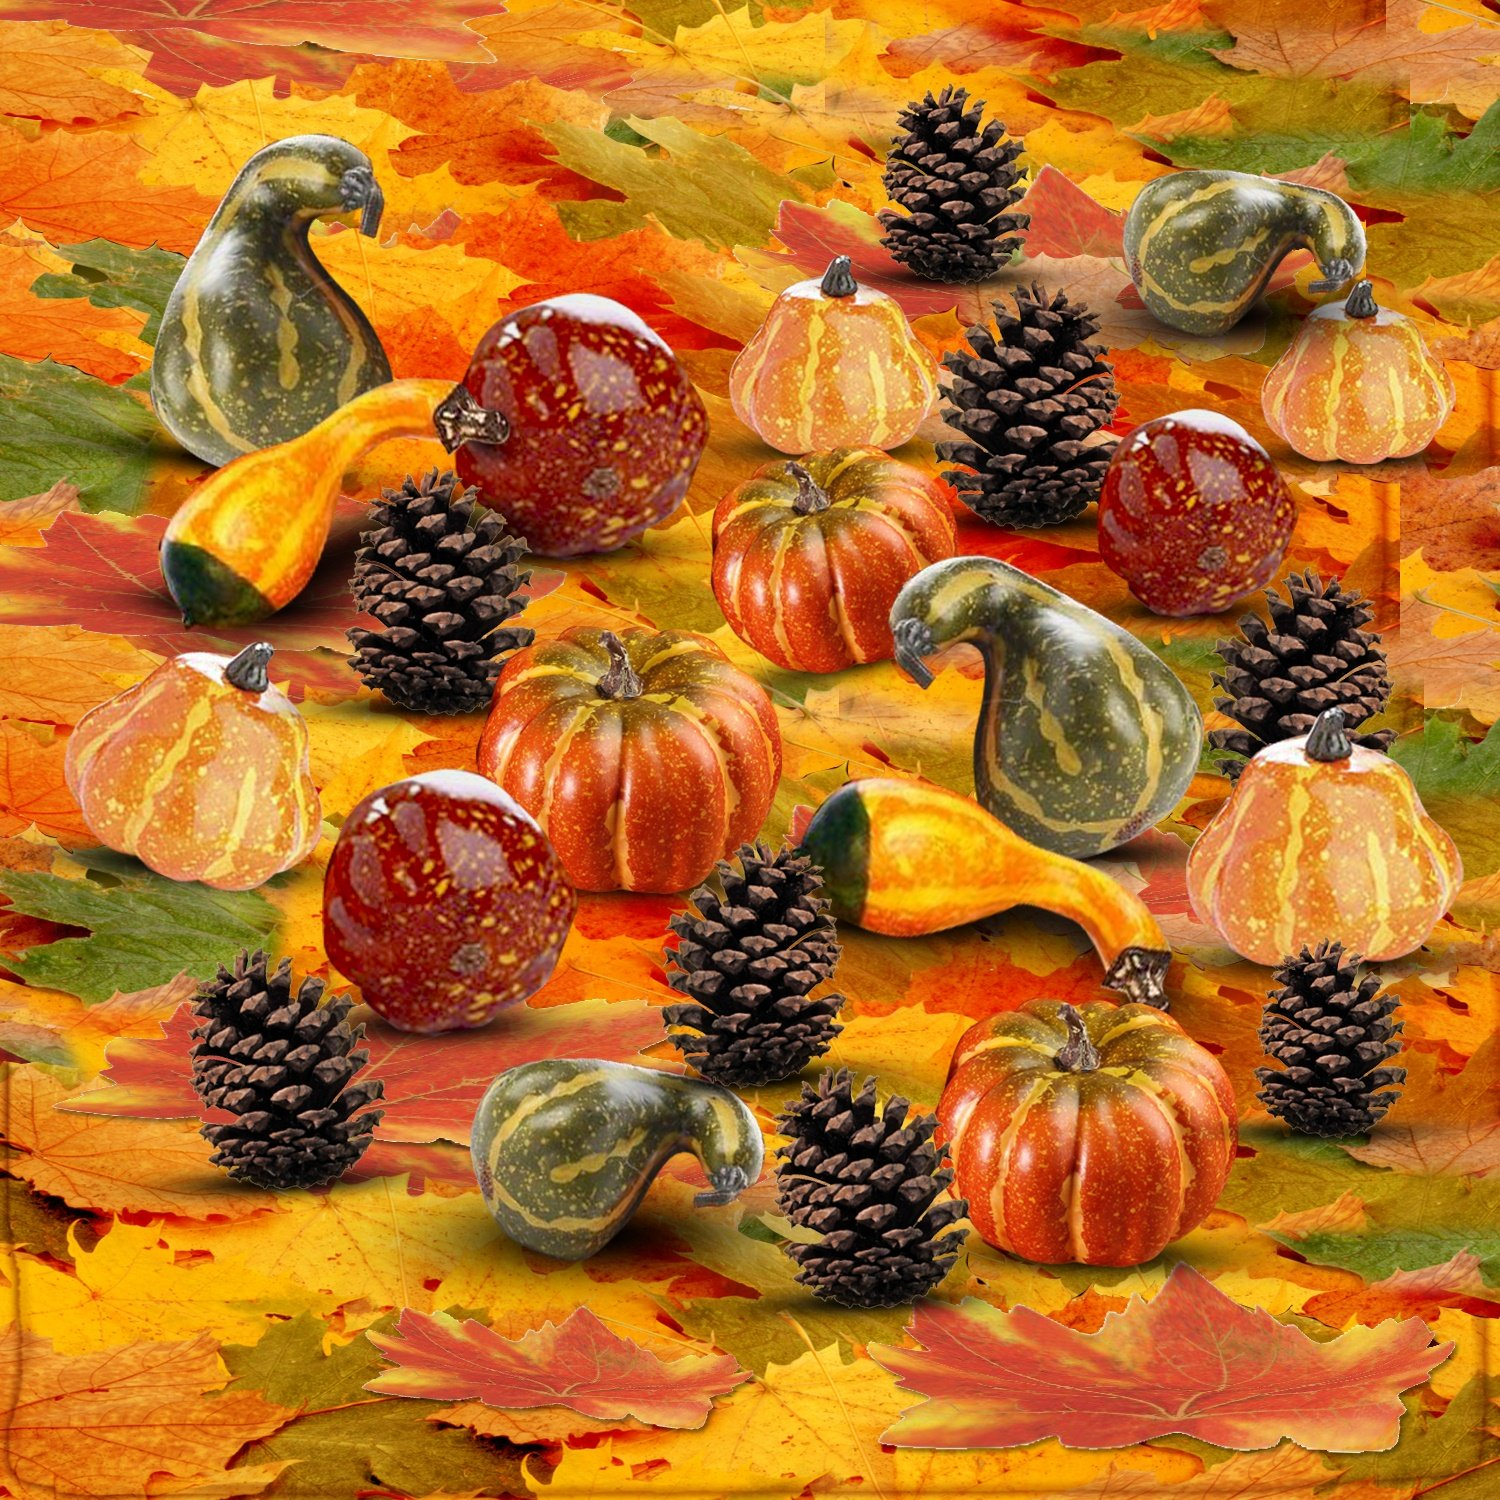 Thanksgiving Home Decoration Set of 250 Mini Maple Leaves + a Mix of 12 Artificial Mini Harvest Pumpkins and Gourds + 15 Pine Cones. Fall Autumn Wedding Décor & Parties